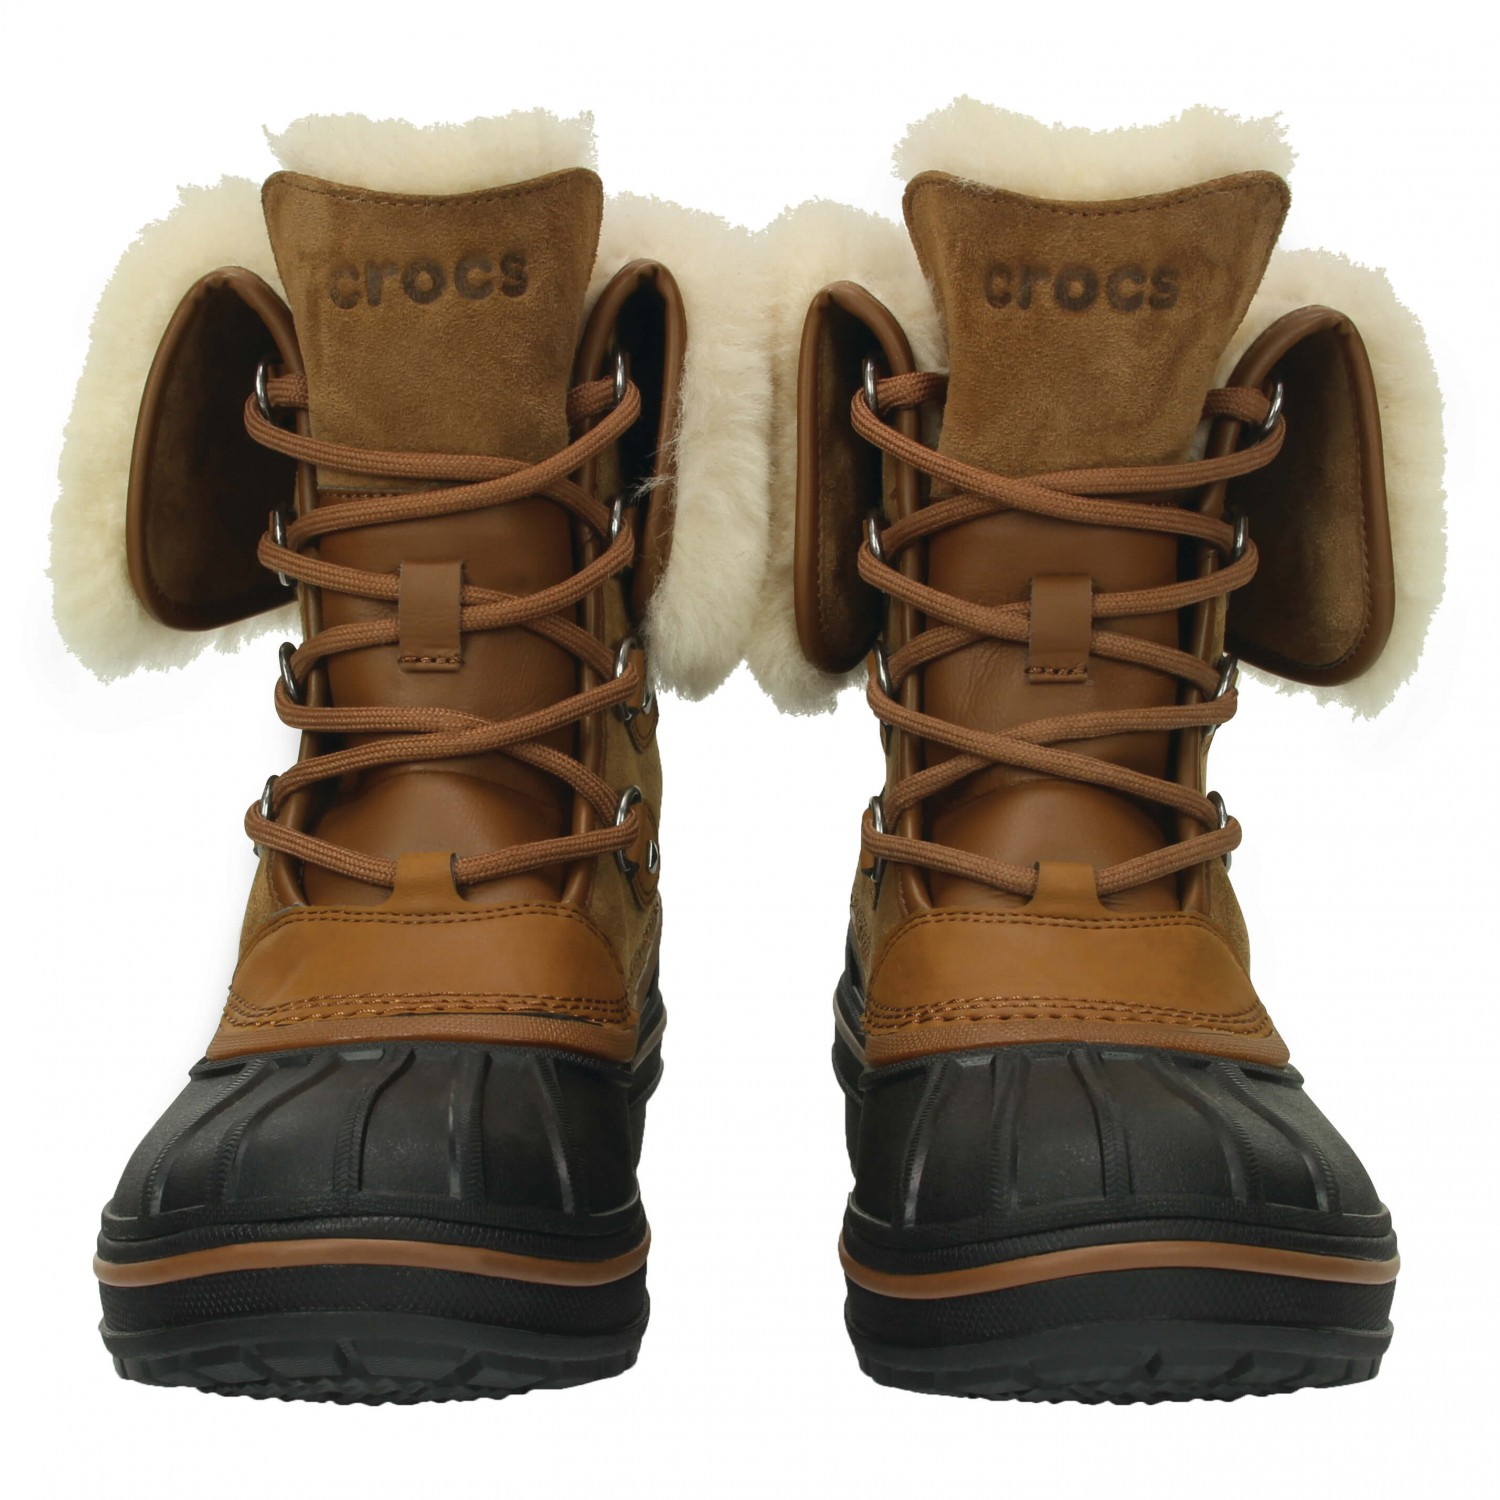 Crocs Allcast Ii Luxe Boot Winter Boots Women S Free